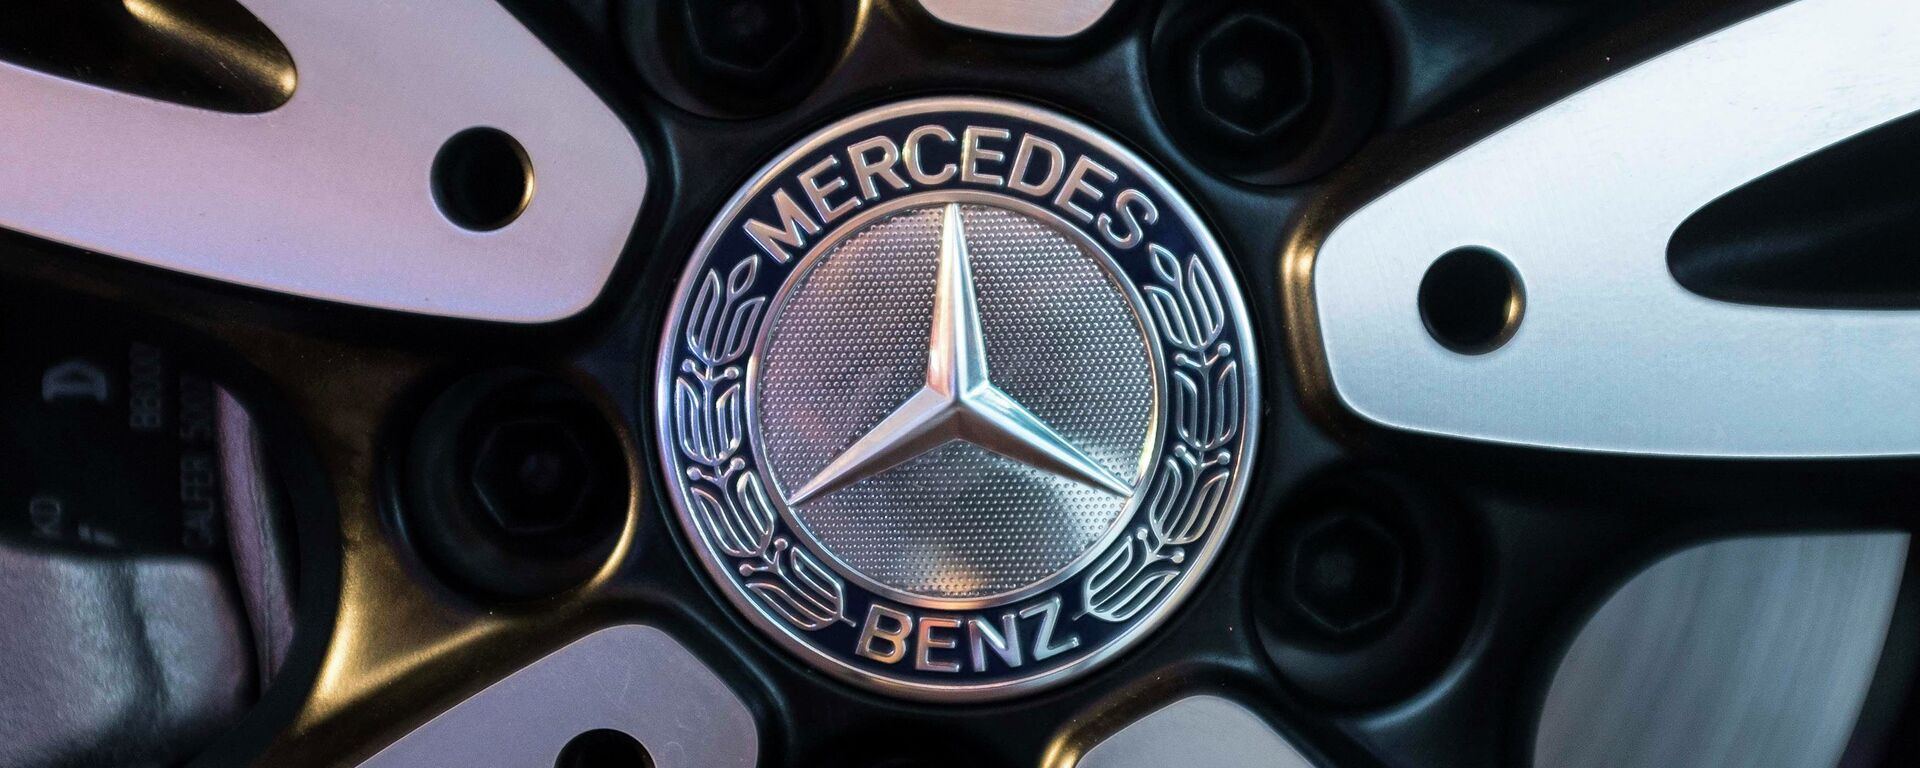 The logo of Mercedes-Benz is seen on the wheel of the new version of A-Class car during its launch in Mumbai - Sputnik Mundo, 1920, 22.07.2021